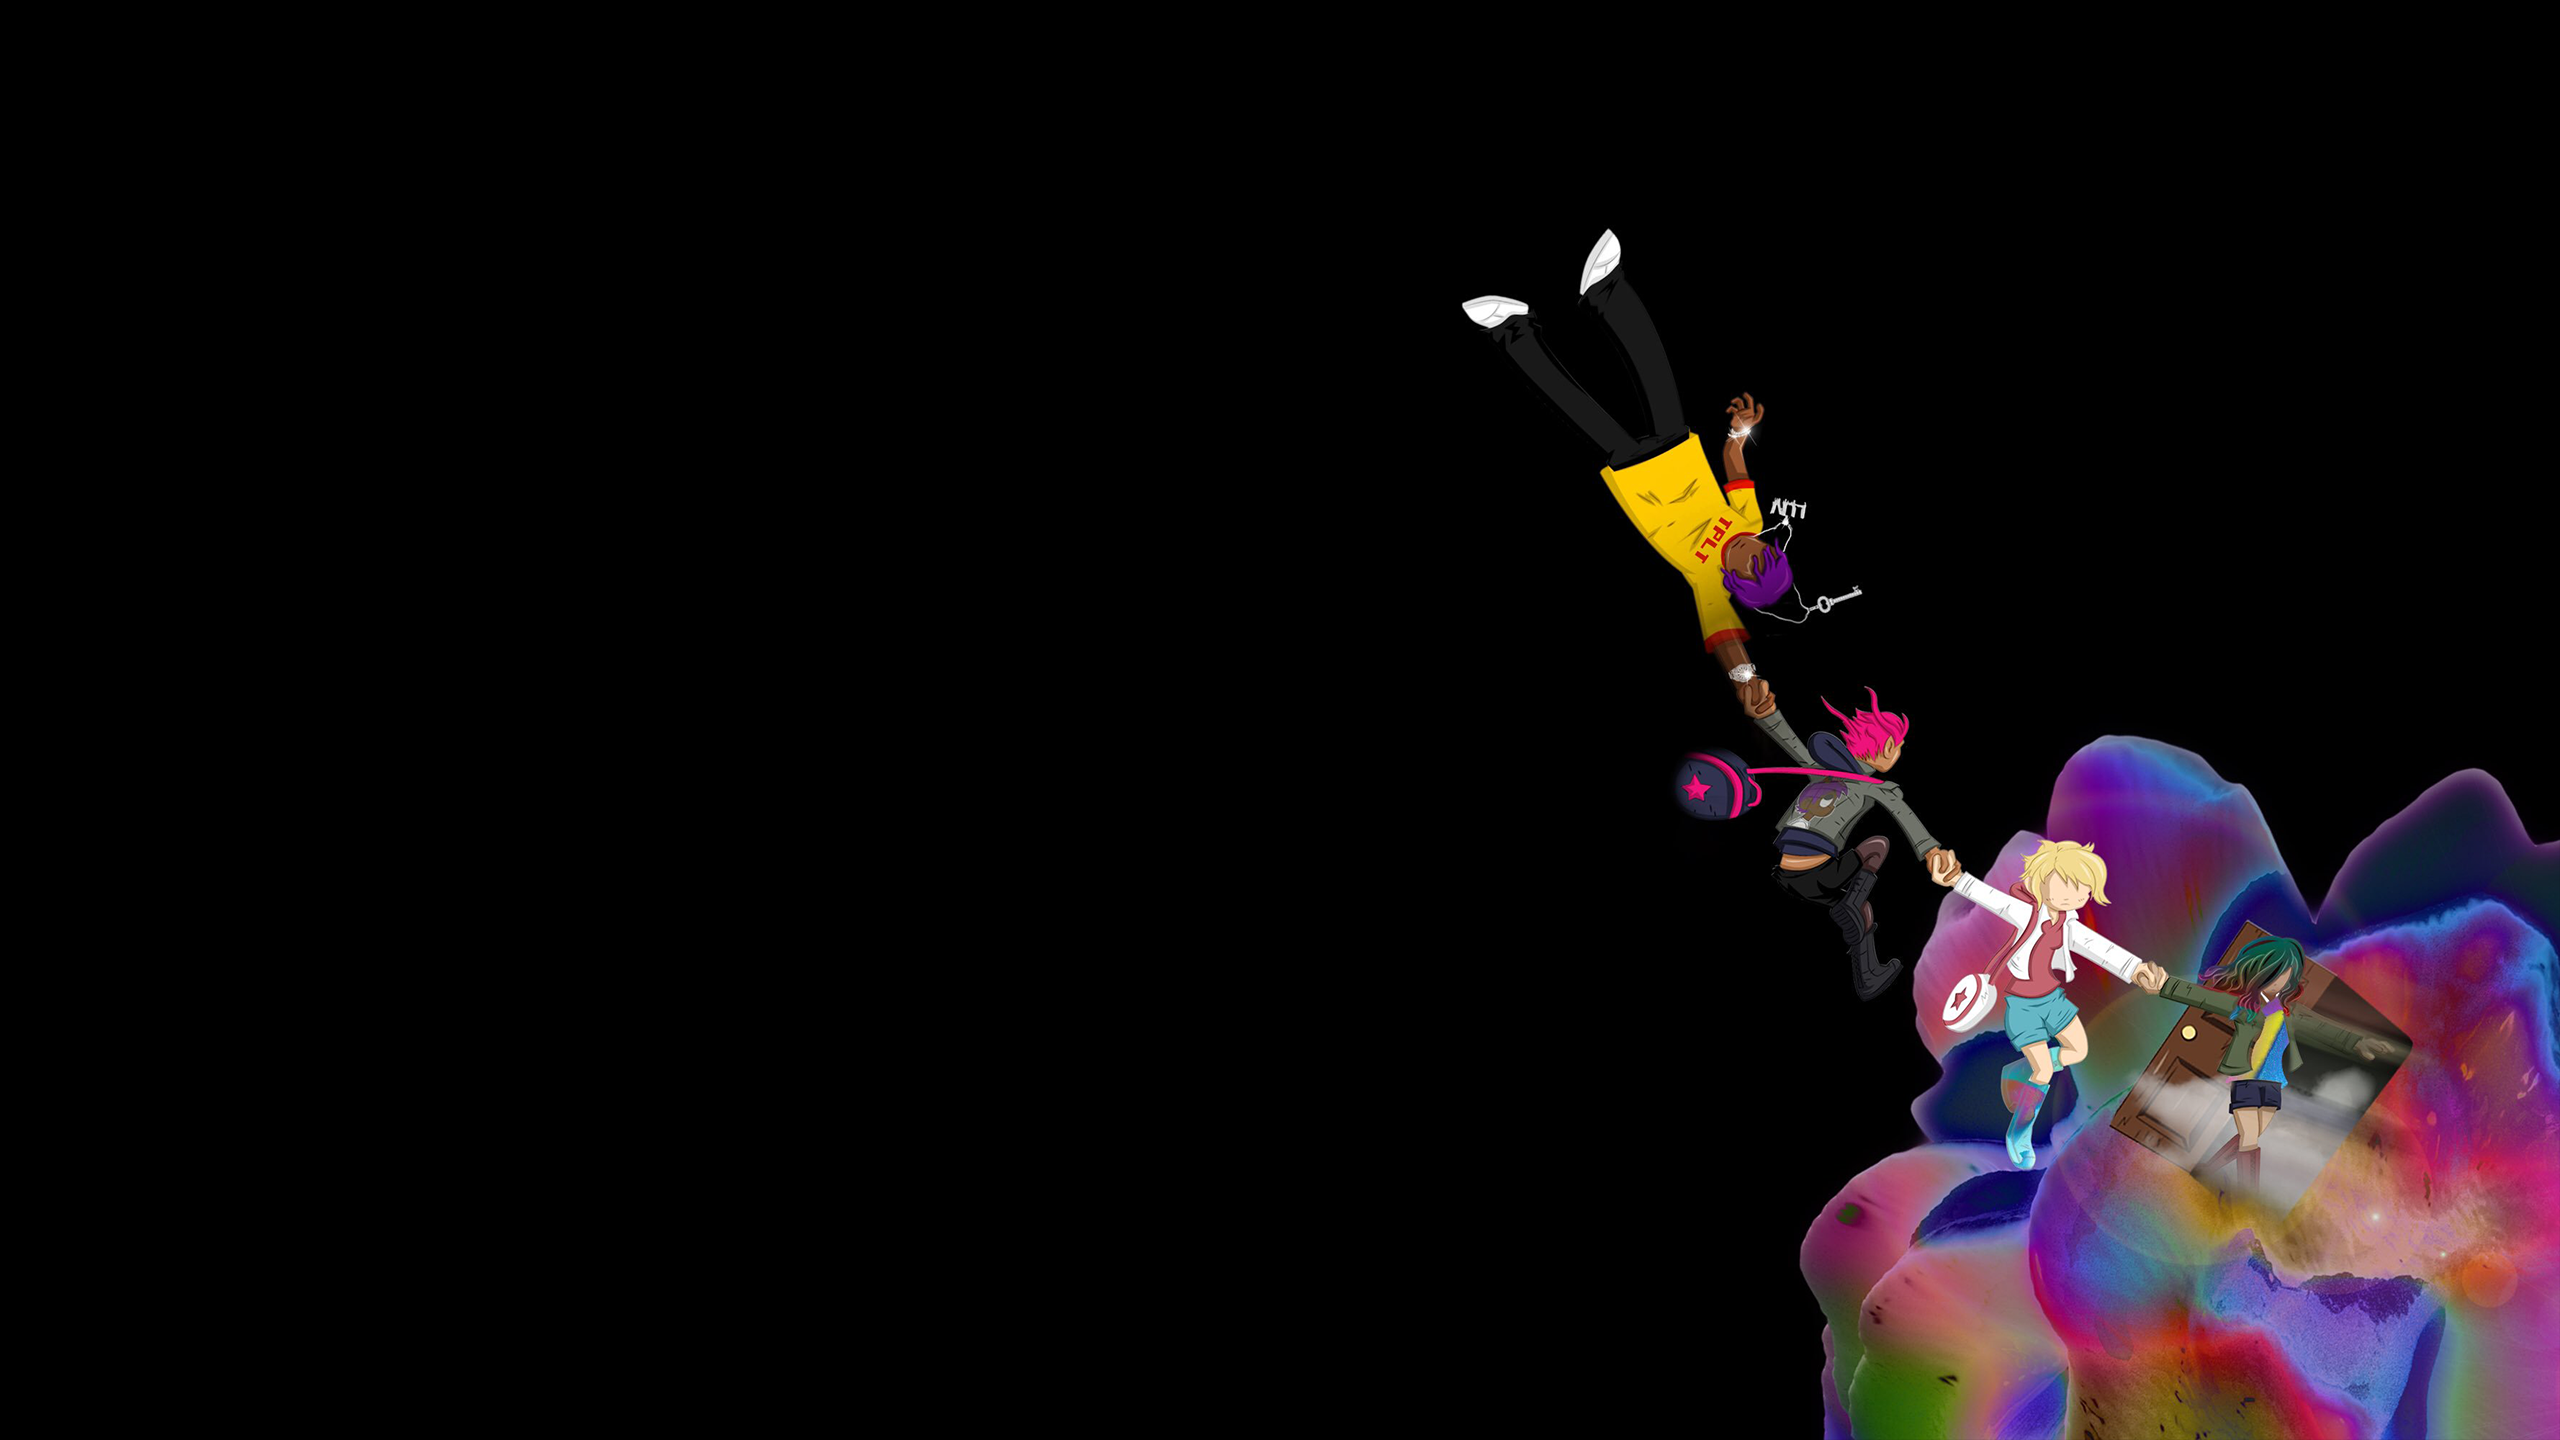 Lil Uzi Vert Laptop Wallpapers Top Free Lil Uzi Vert Laptop Backgrounds Wallpaperaccess Download wallpaper lil uzi vert, music, singer, male celebrities, boys, hd, 4k, 5k, 8k images, backgrounds, photos and pictures for desktop,pc,android,iphones. lil uzi vert laptop wallpapers top